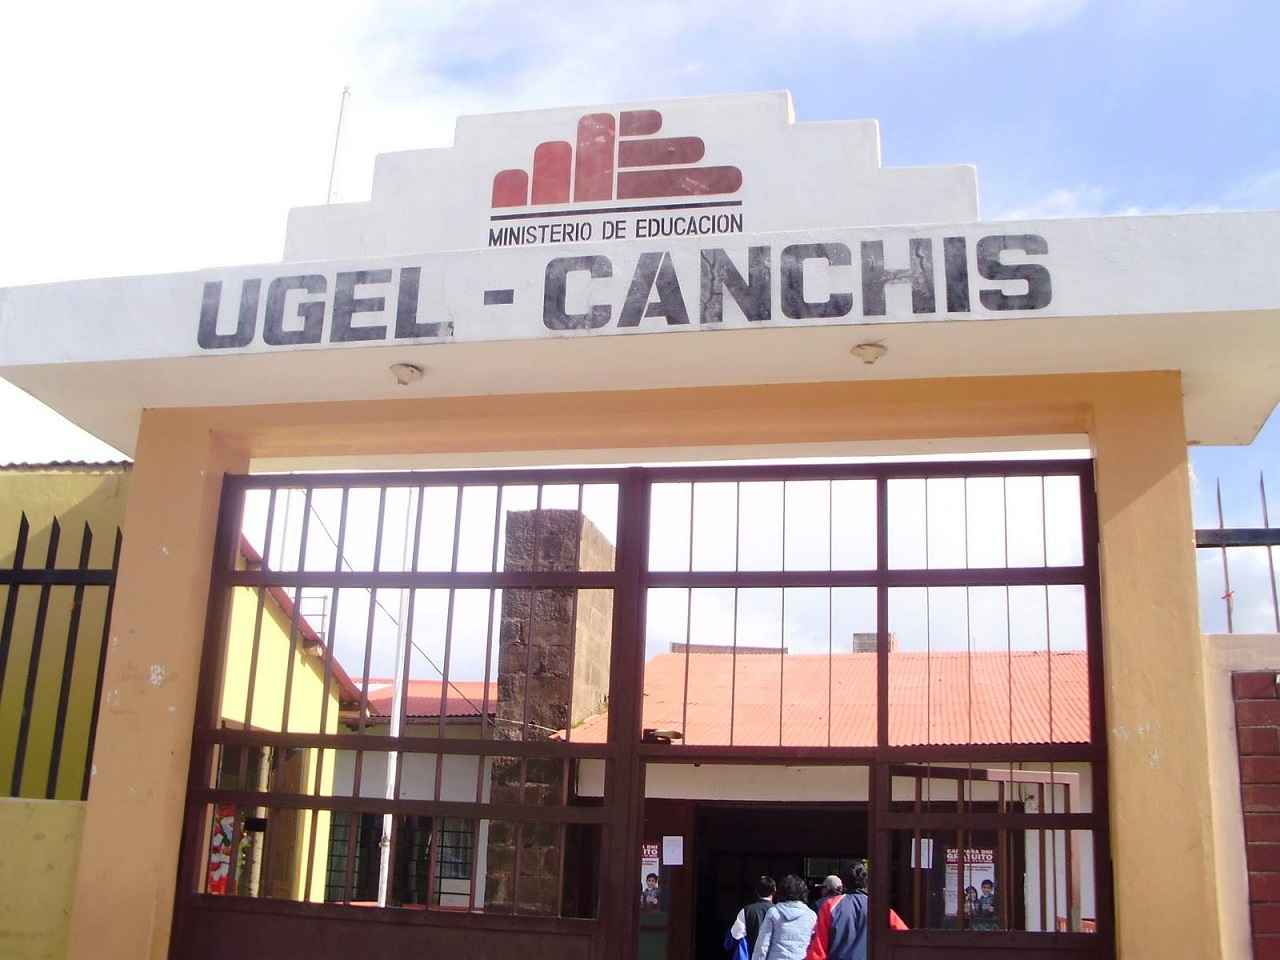 UGEL Canchis